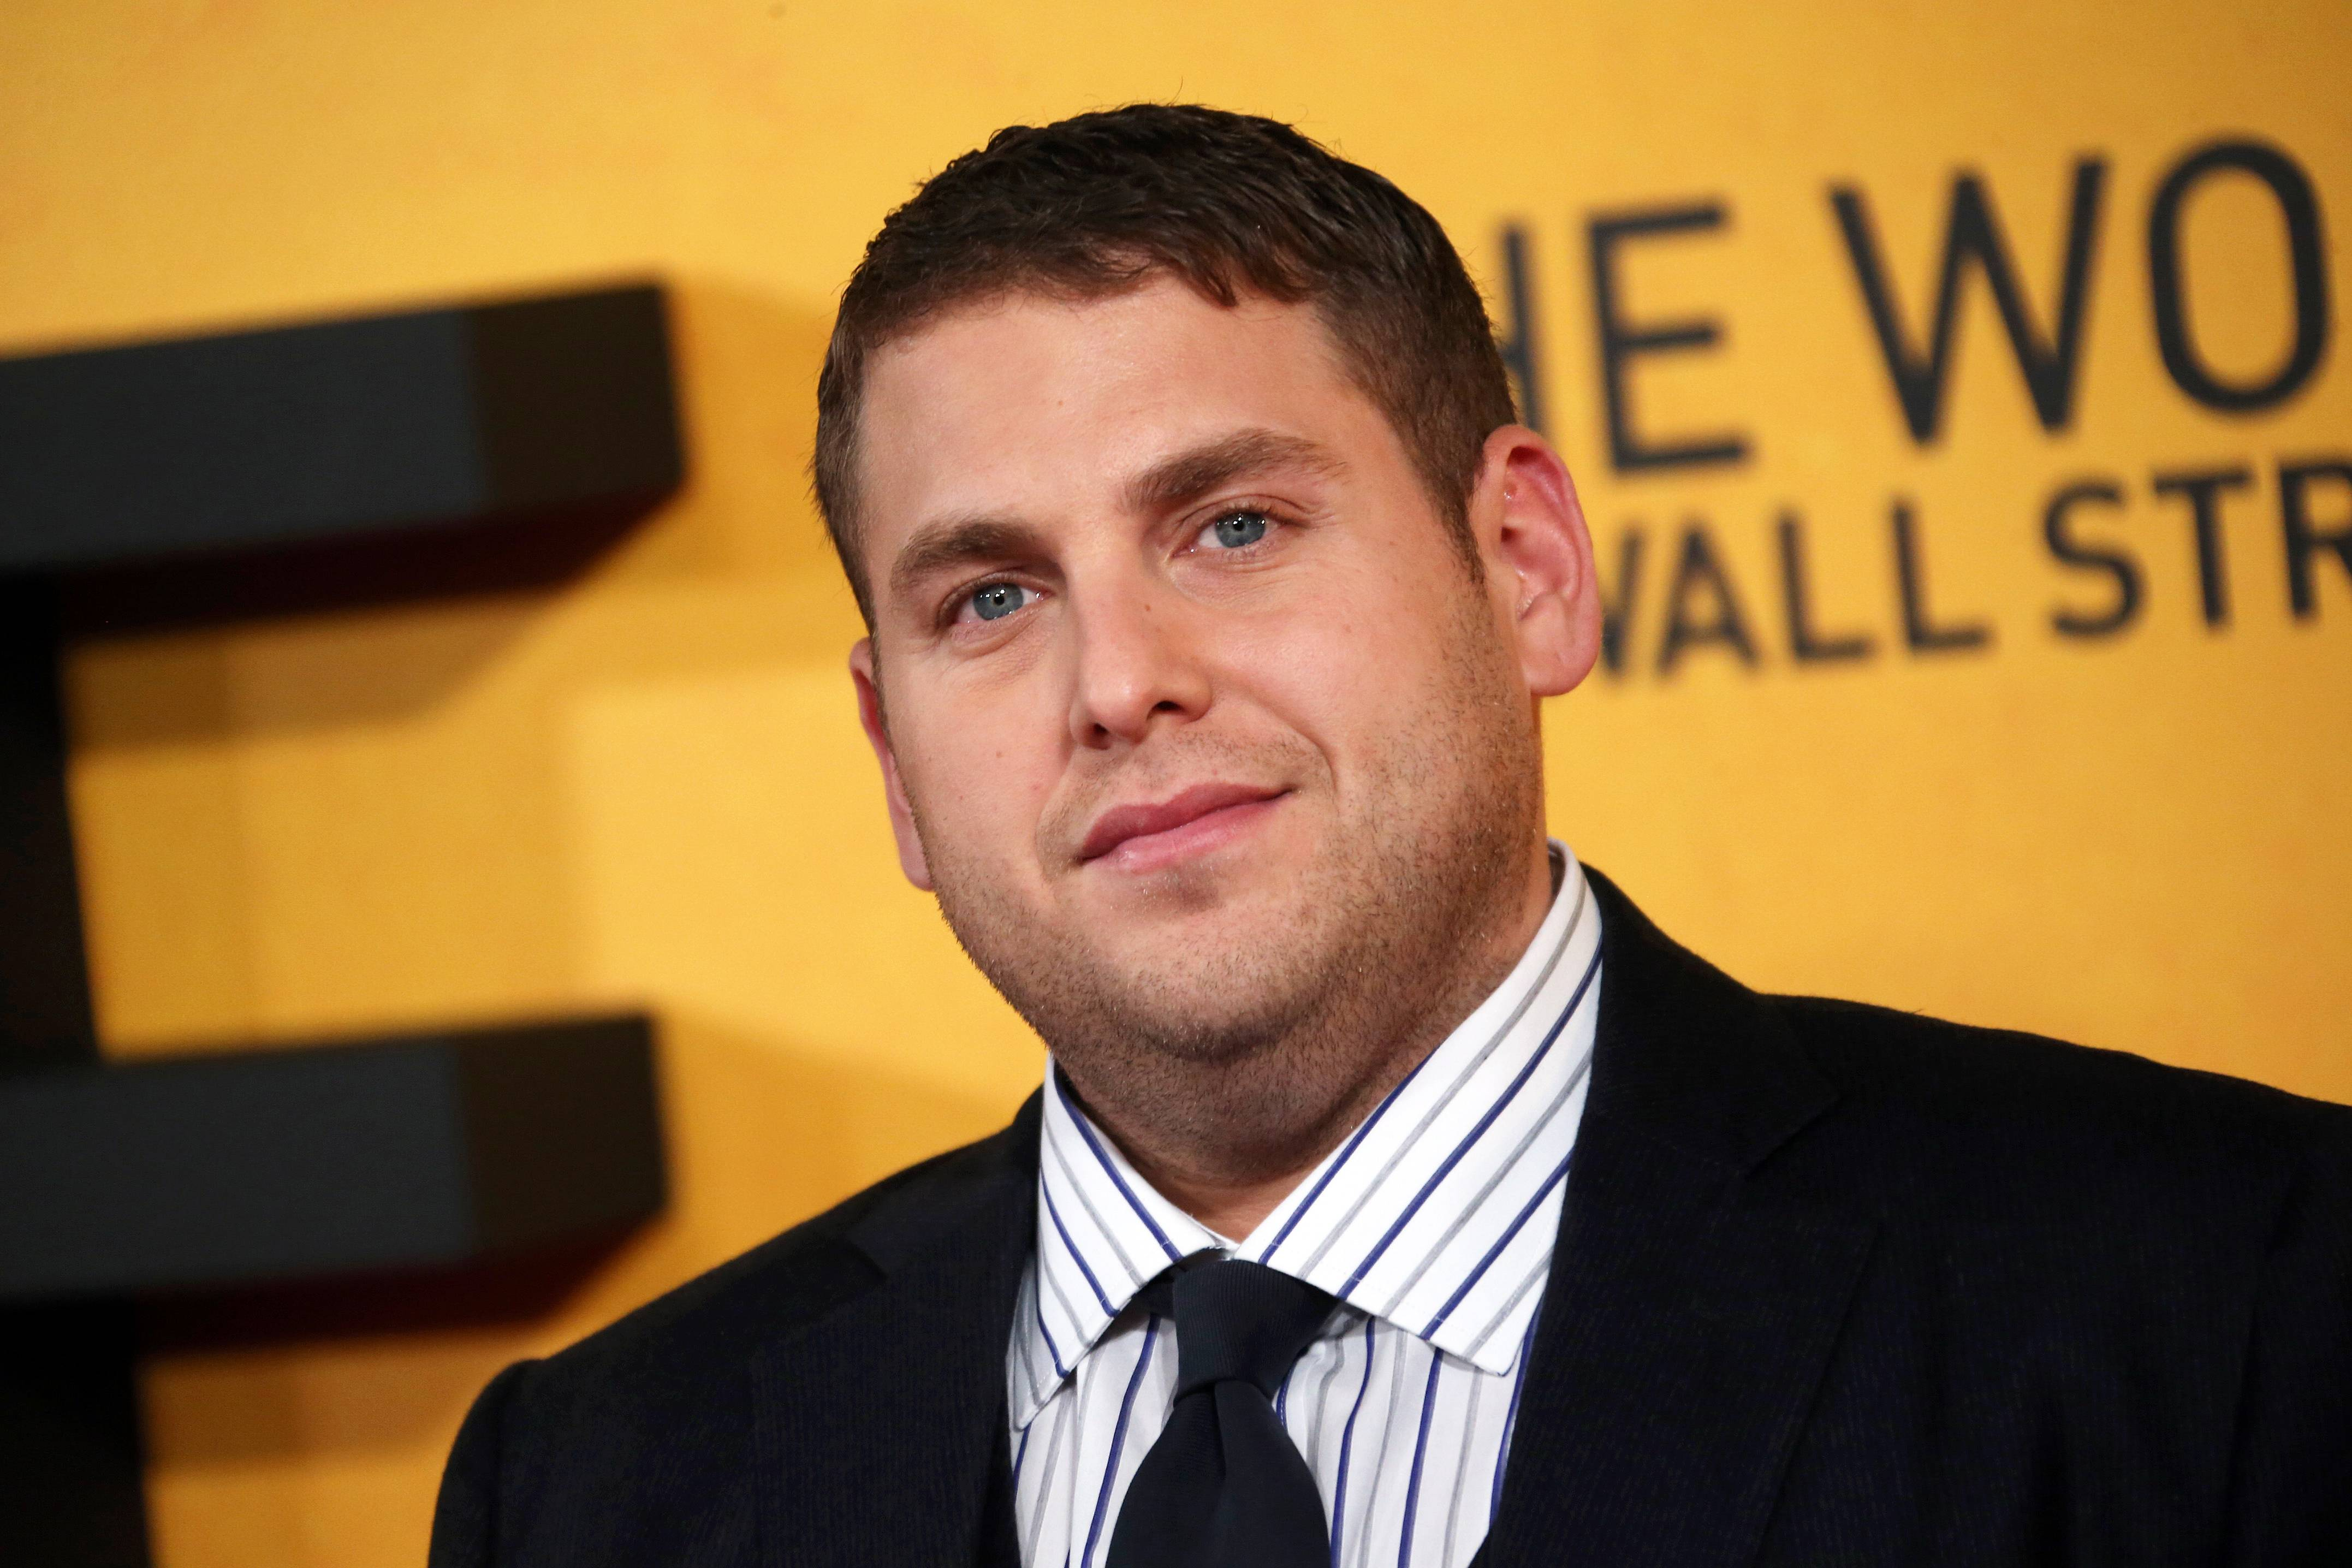 "Jonah Hill has apologized for shouting a homophobic slur at a paparazzo in an encounter caught on video. A video posted Tuesday by TMZ shows a photographer pestering Hill, who responded with expletives and an anti-gay expression. On ""The Howard Stern Show"" on Tuesday, the 30-year-old actor acknowledged that he said ""a disgusting word."" Hill said the word ""does not at all reflect how I feel about any group of people."""